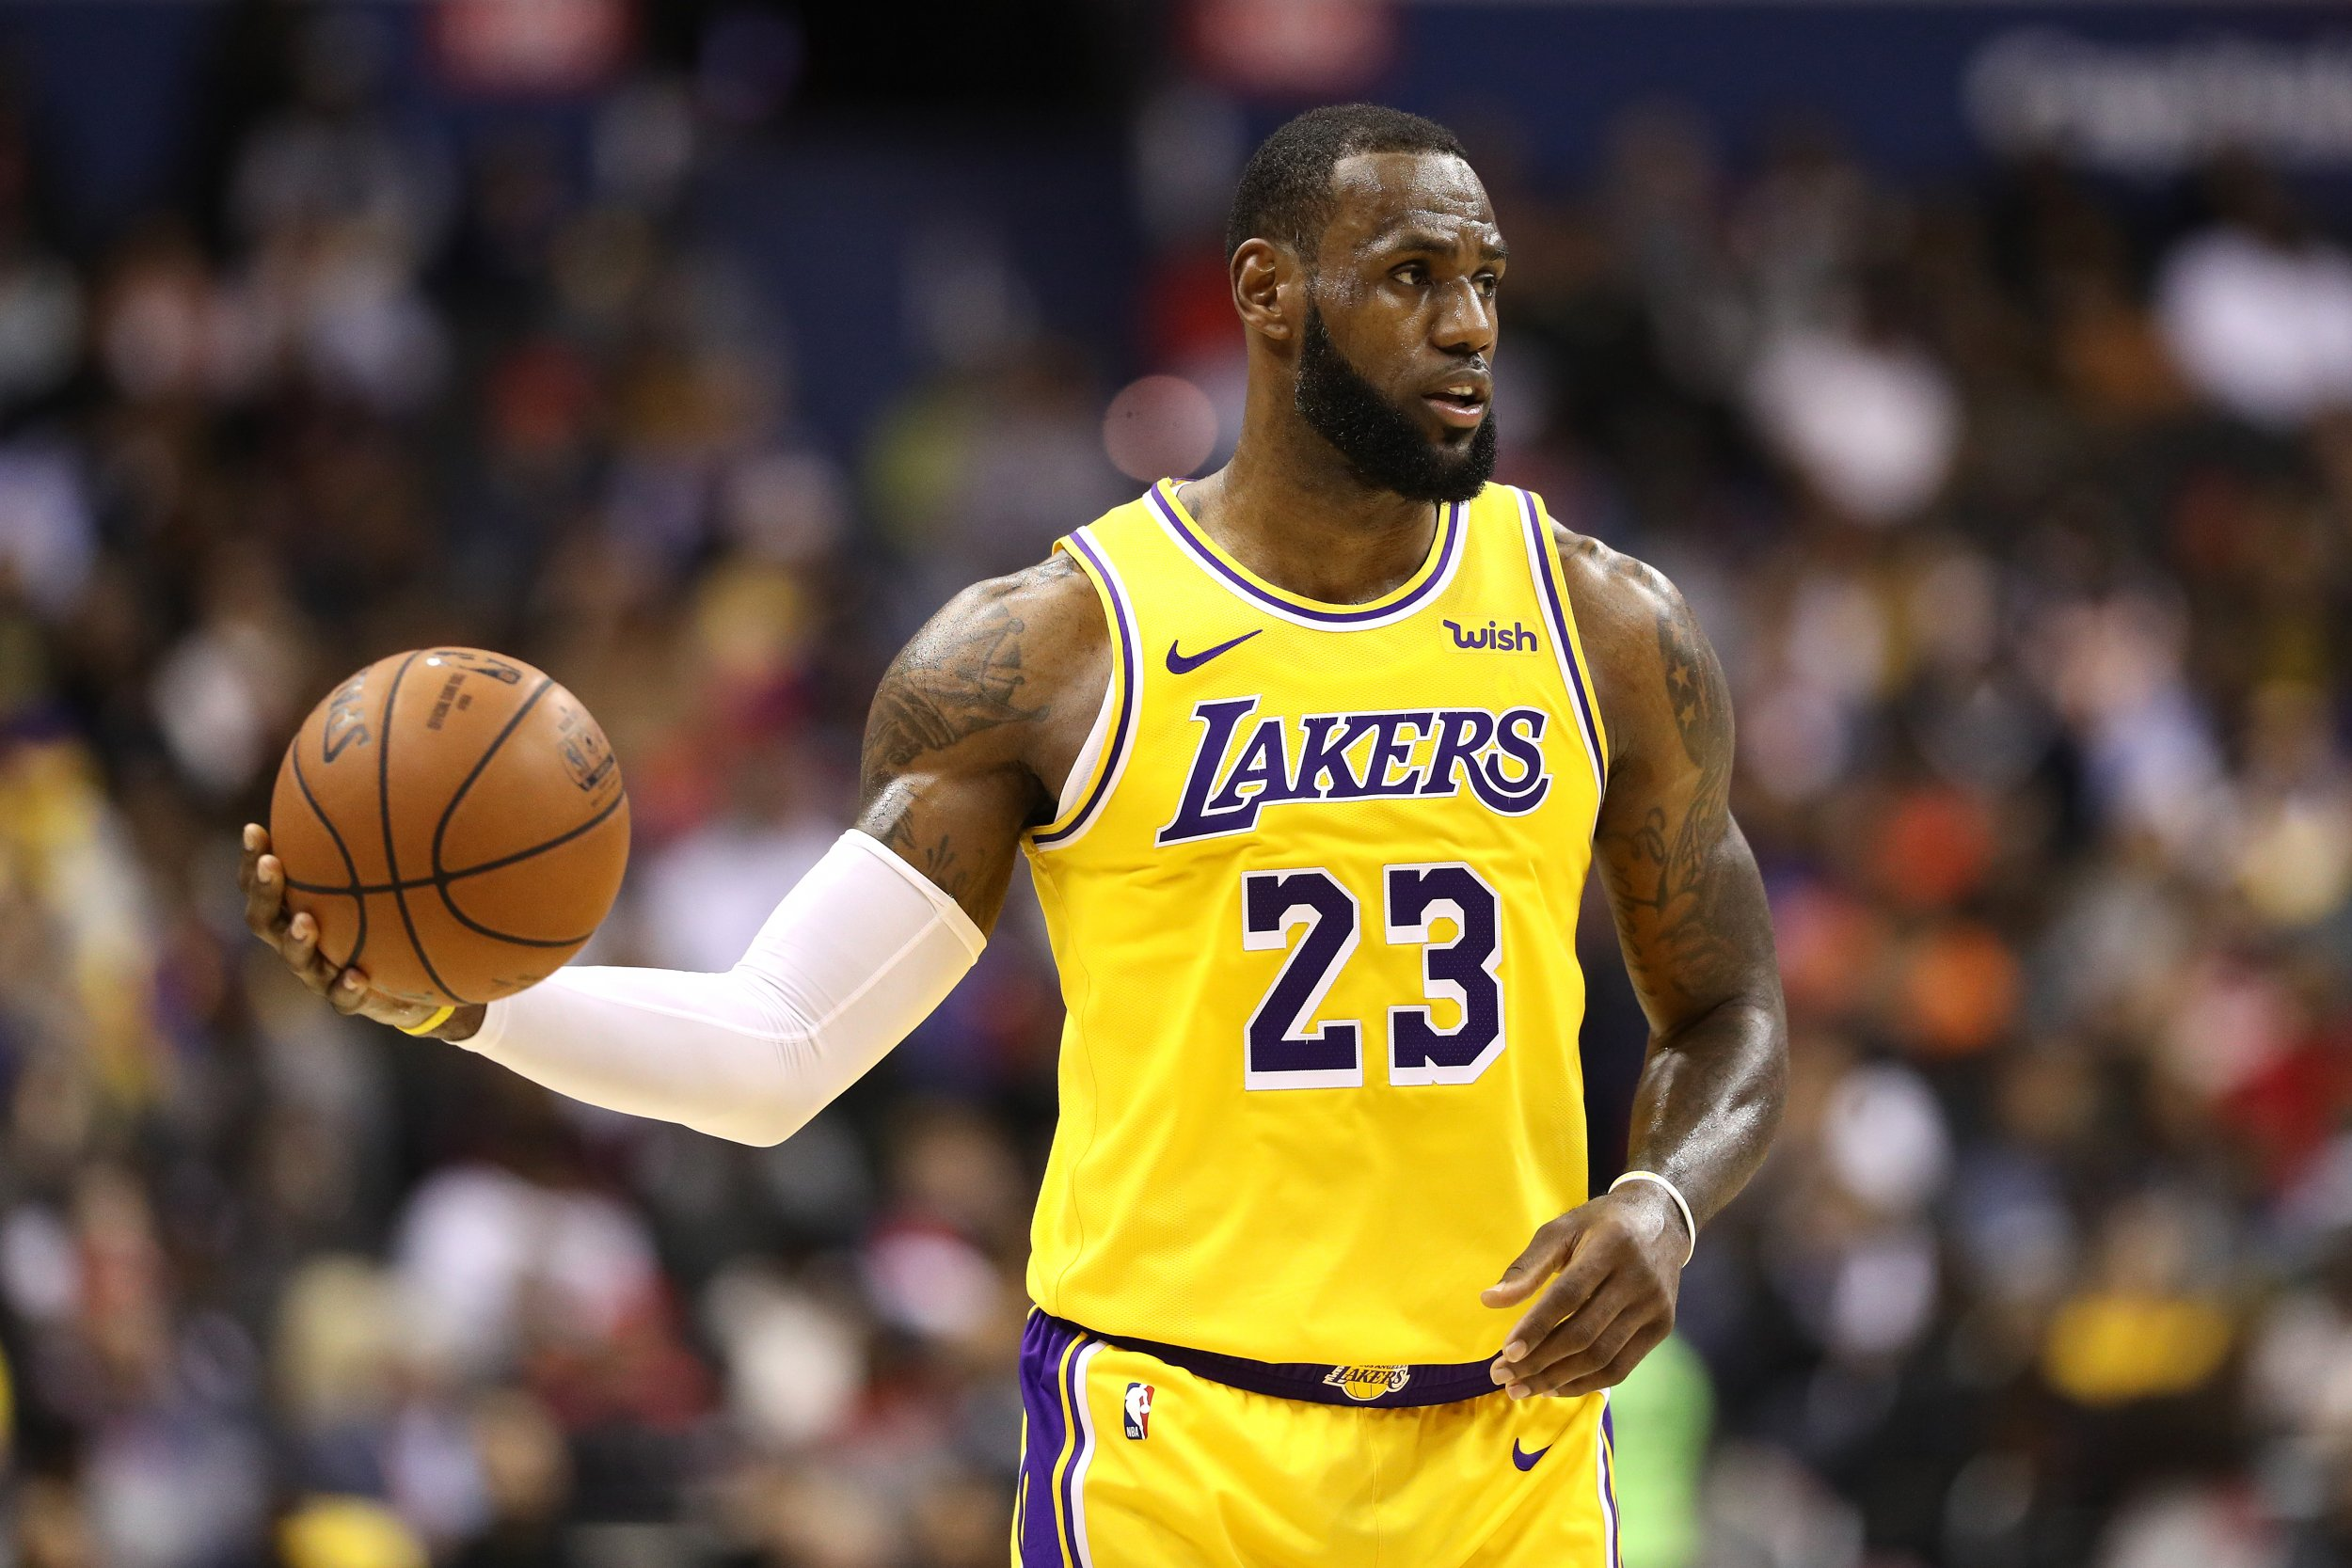 Nba Christmas Schedule.Nba Christmas Games 2018 Which Teams Are Playing Tv